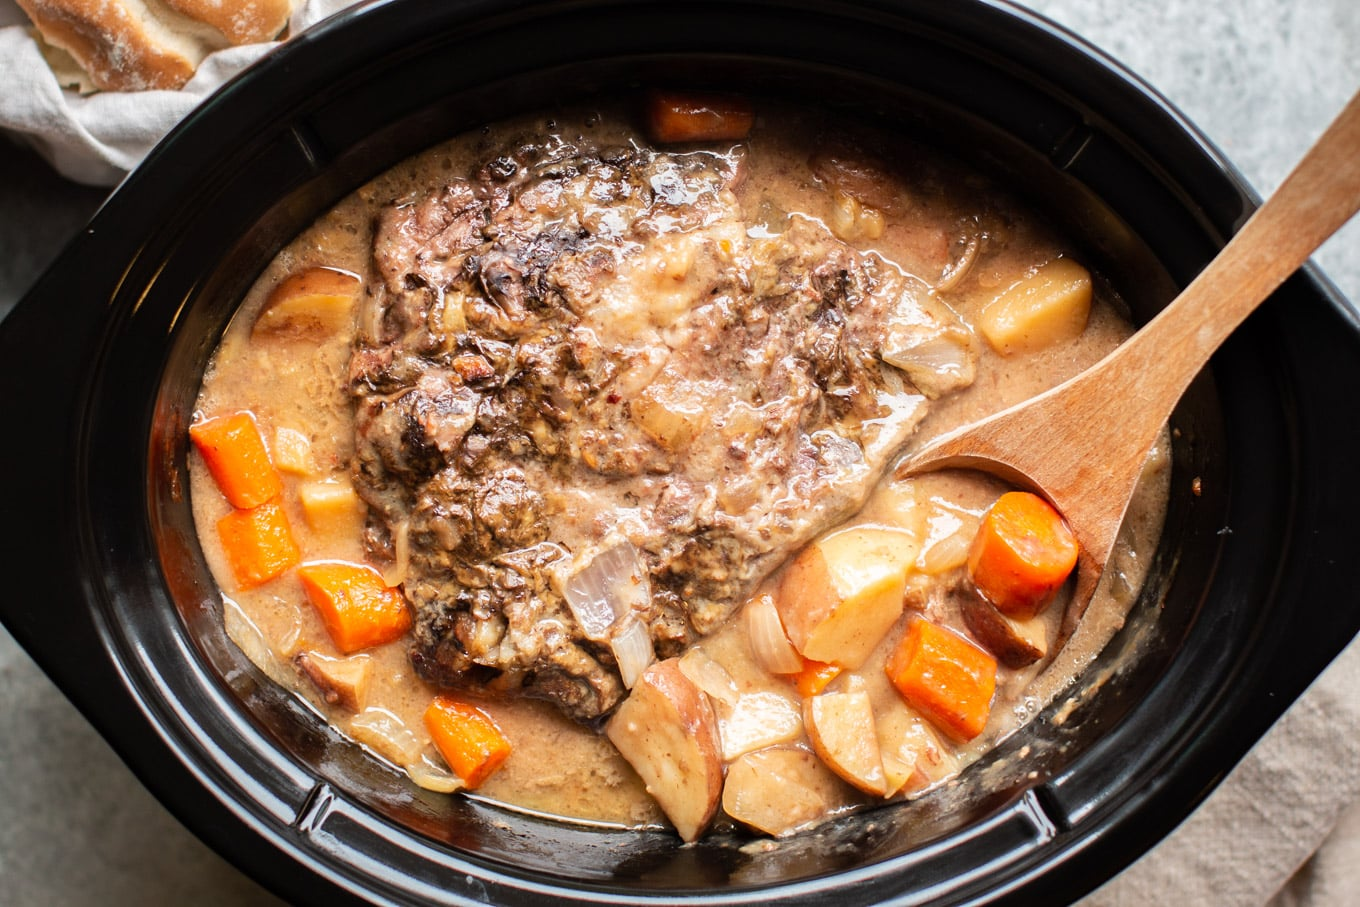 cooked pot roast in gravy with vegetables in a slow cooker.